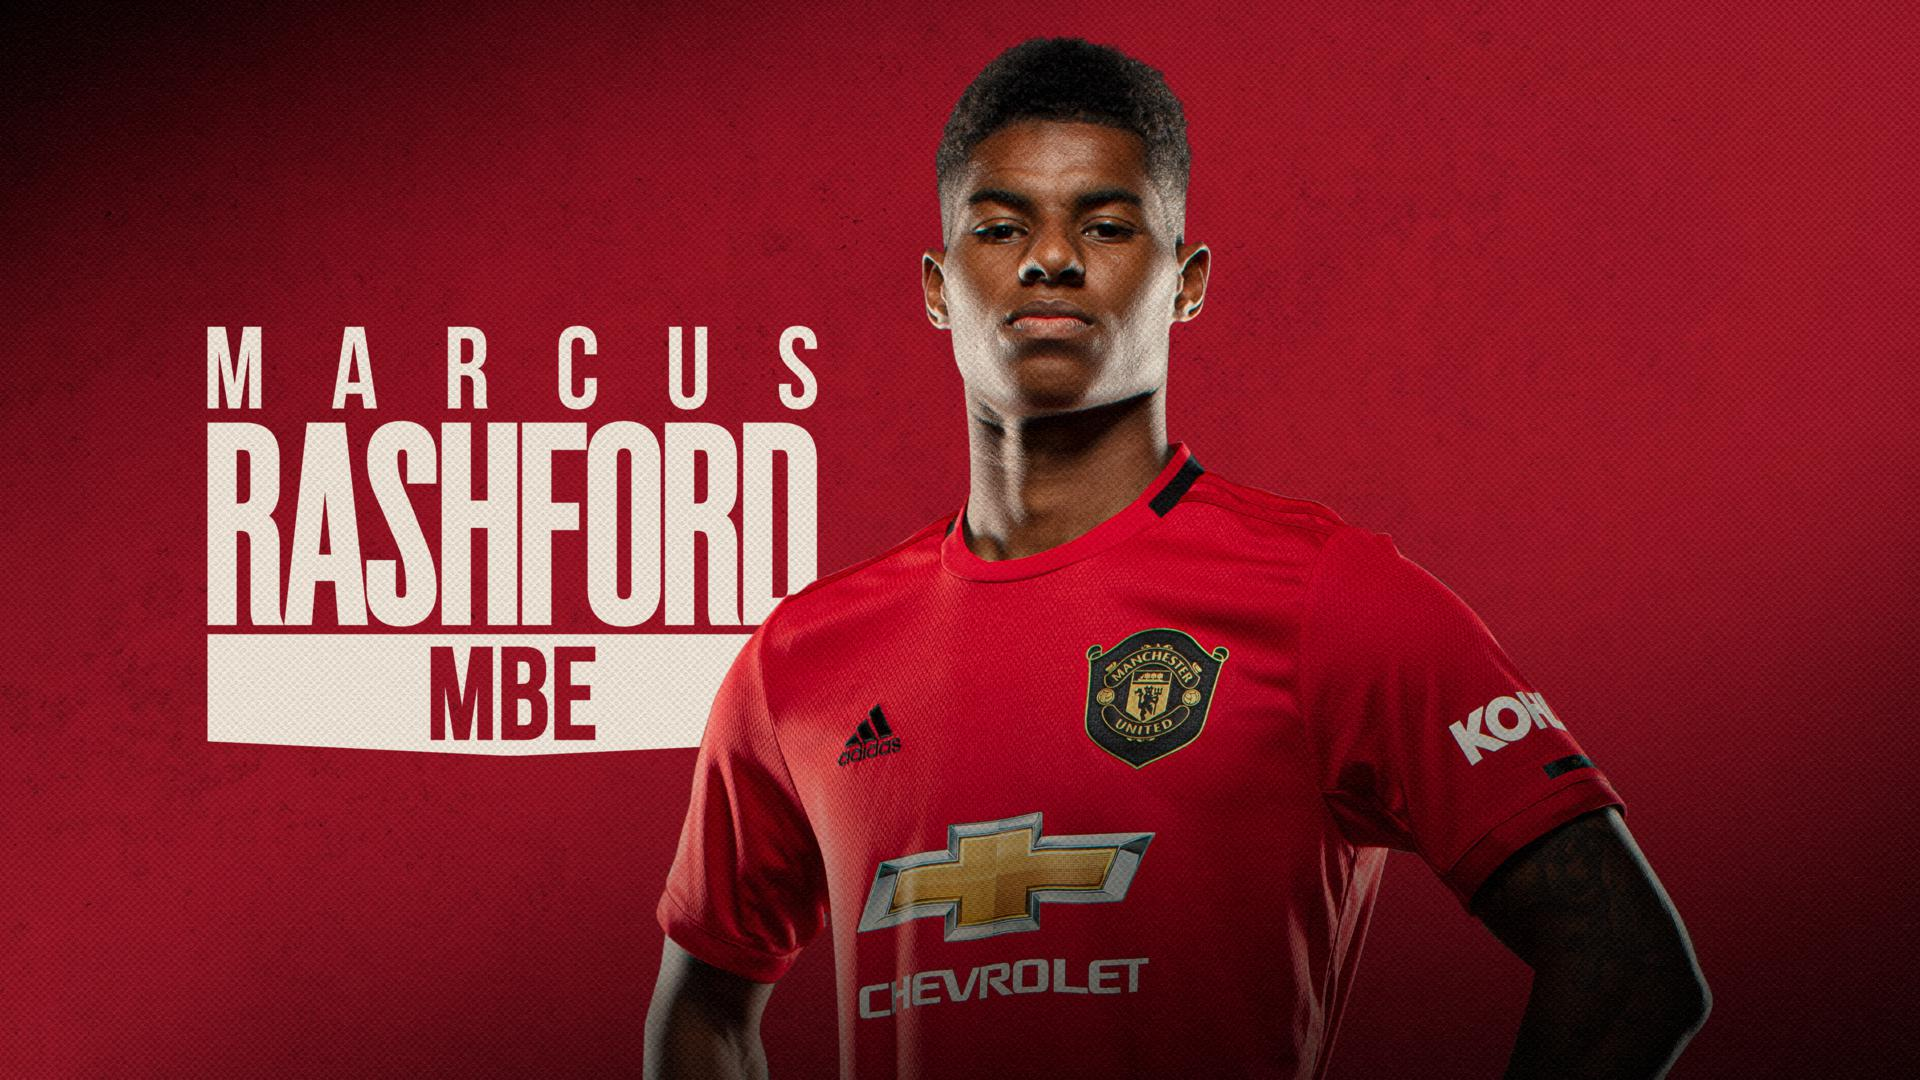 Marcus Rashford reacts to being awarded an MBE | Manchester United